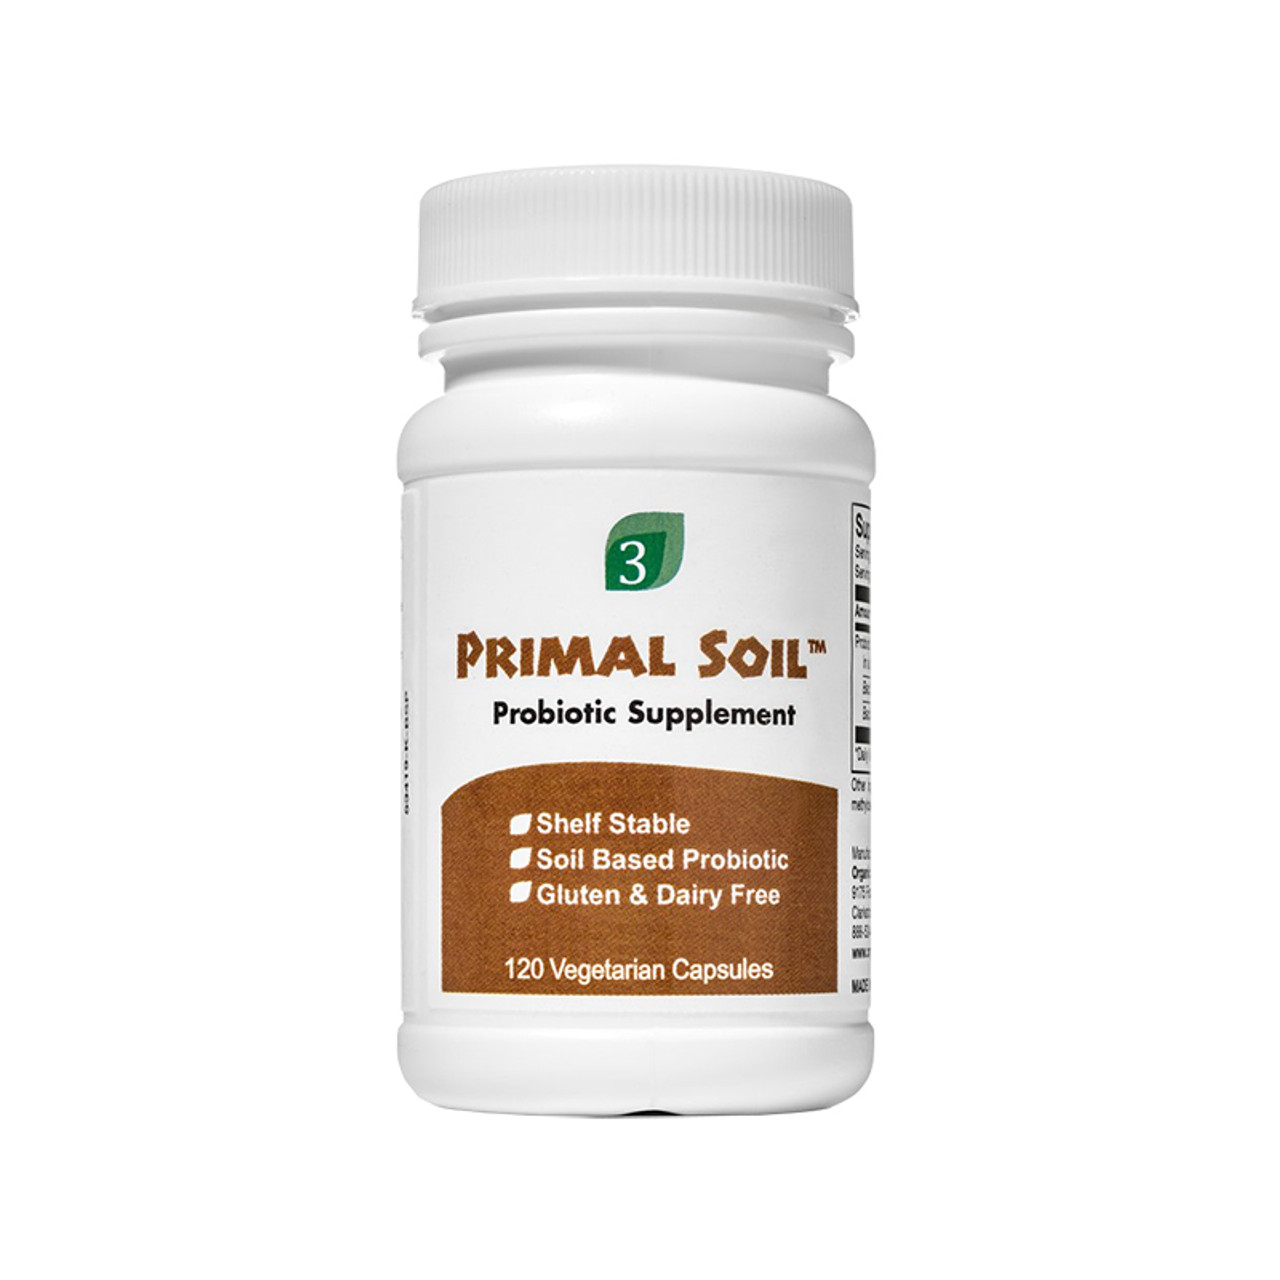 Front view of Organic3 Primal Soil Probiotic Supplement.